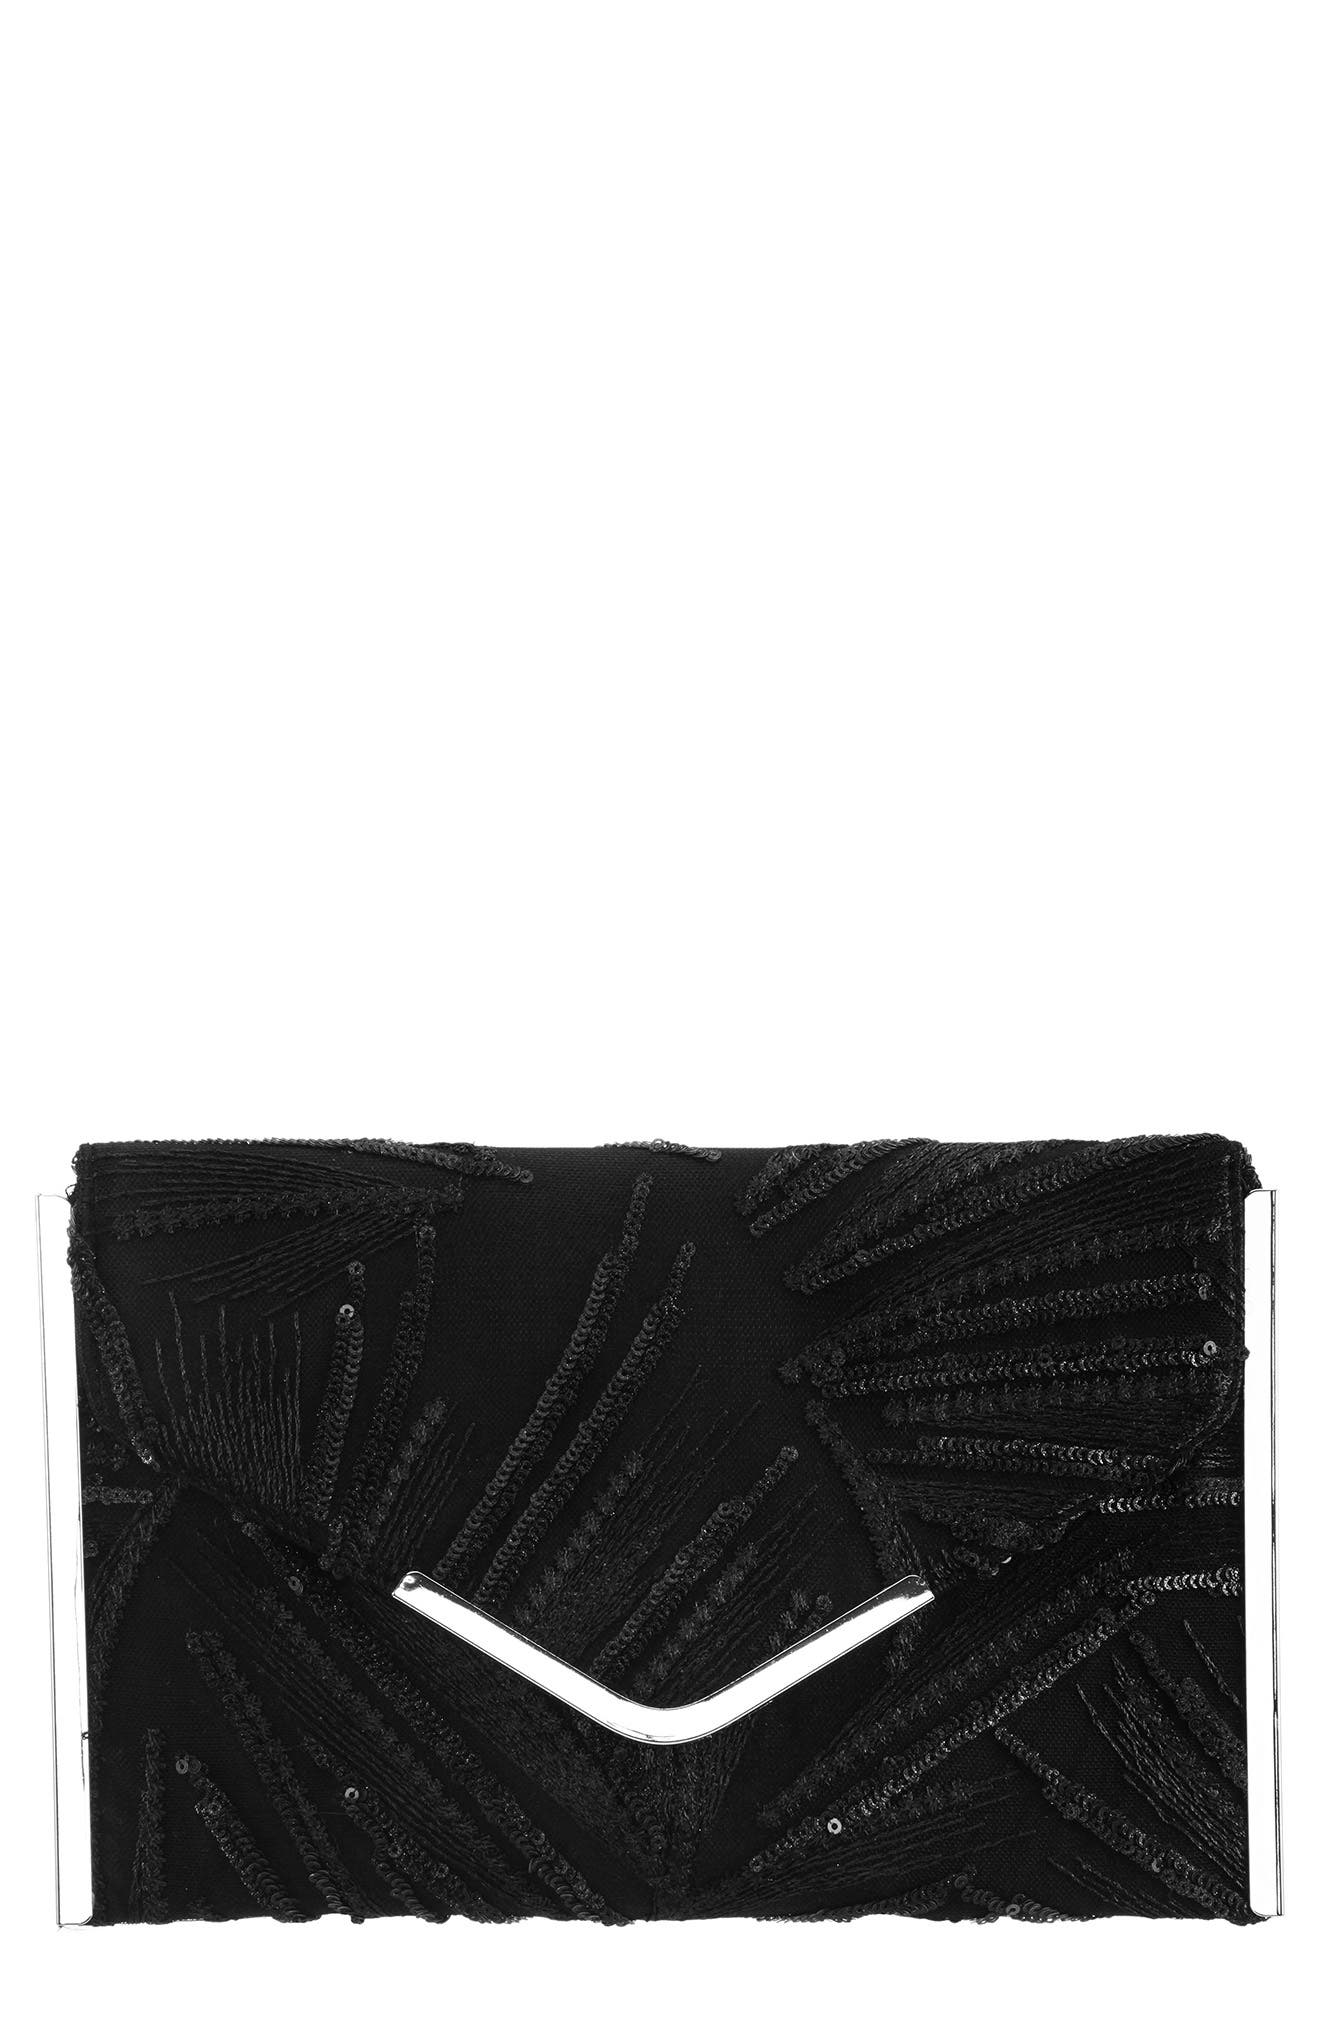 Embroidery Envelope Clutch Bag,                         Main,                         color, 012